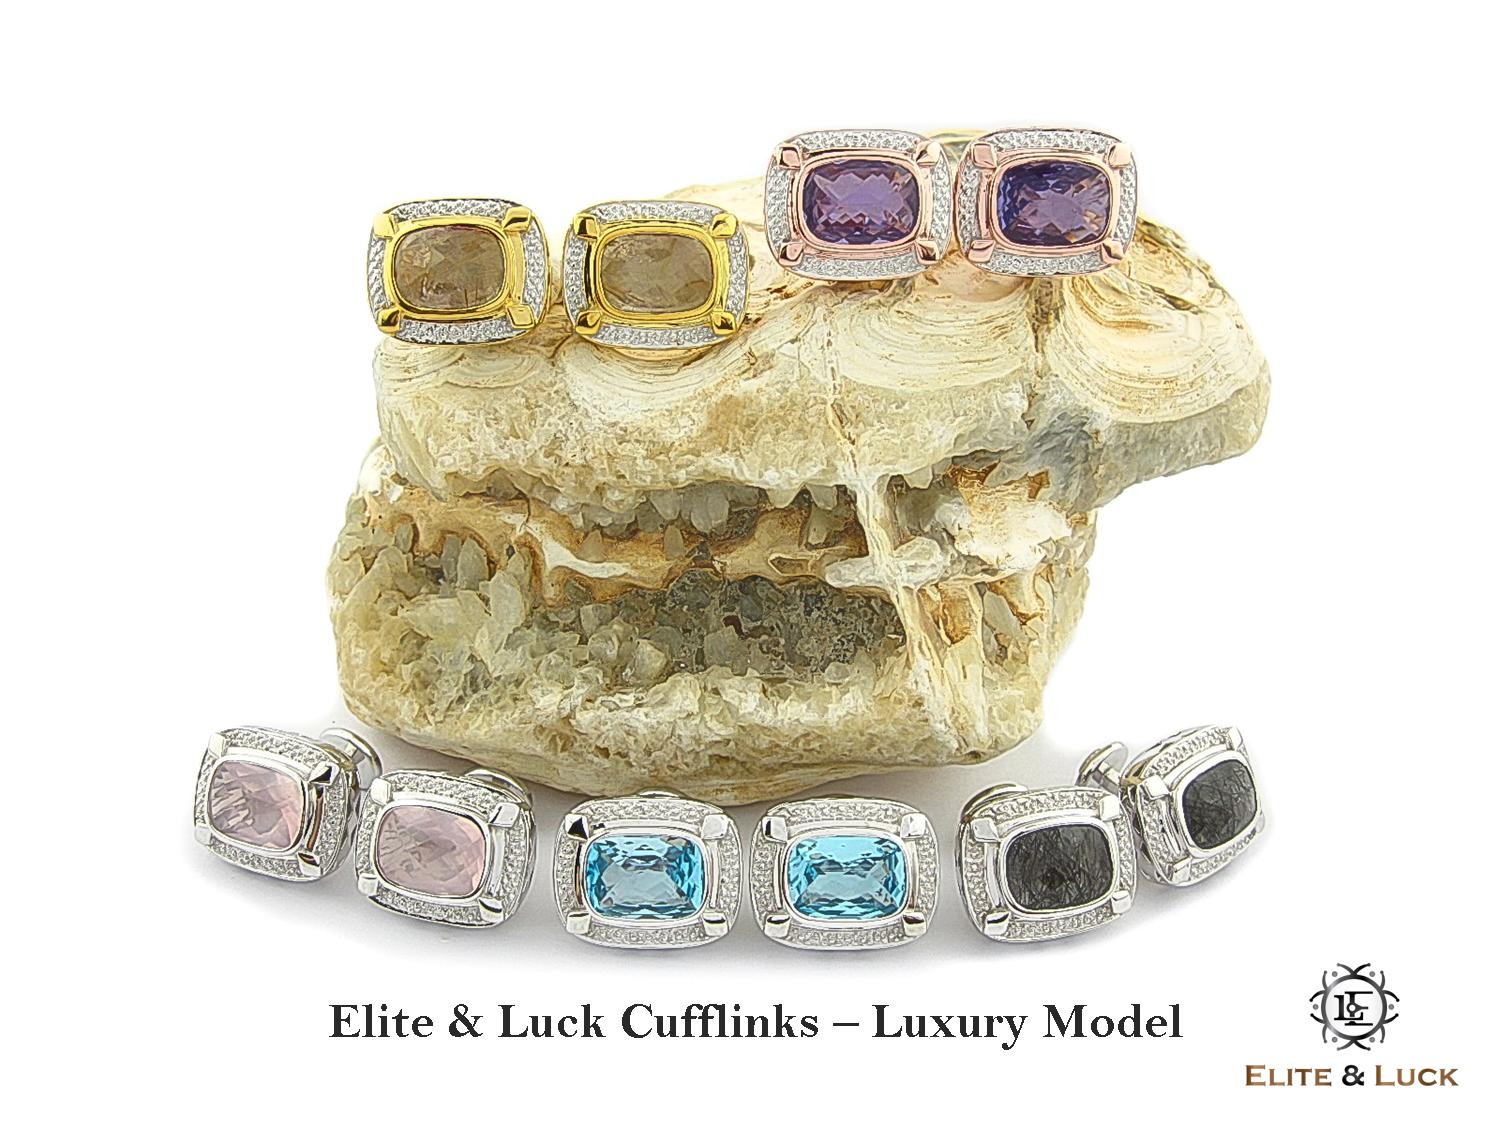 Elite & Luck Gemstone Cufflinks for Men, Luxury Model